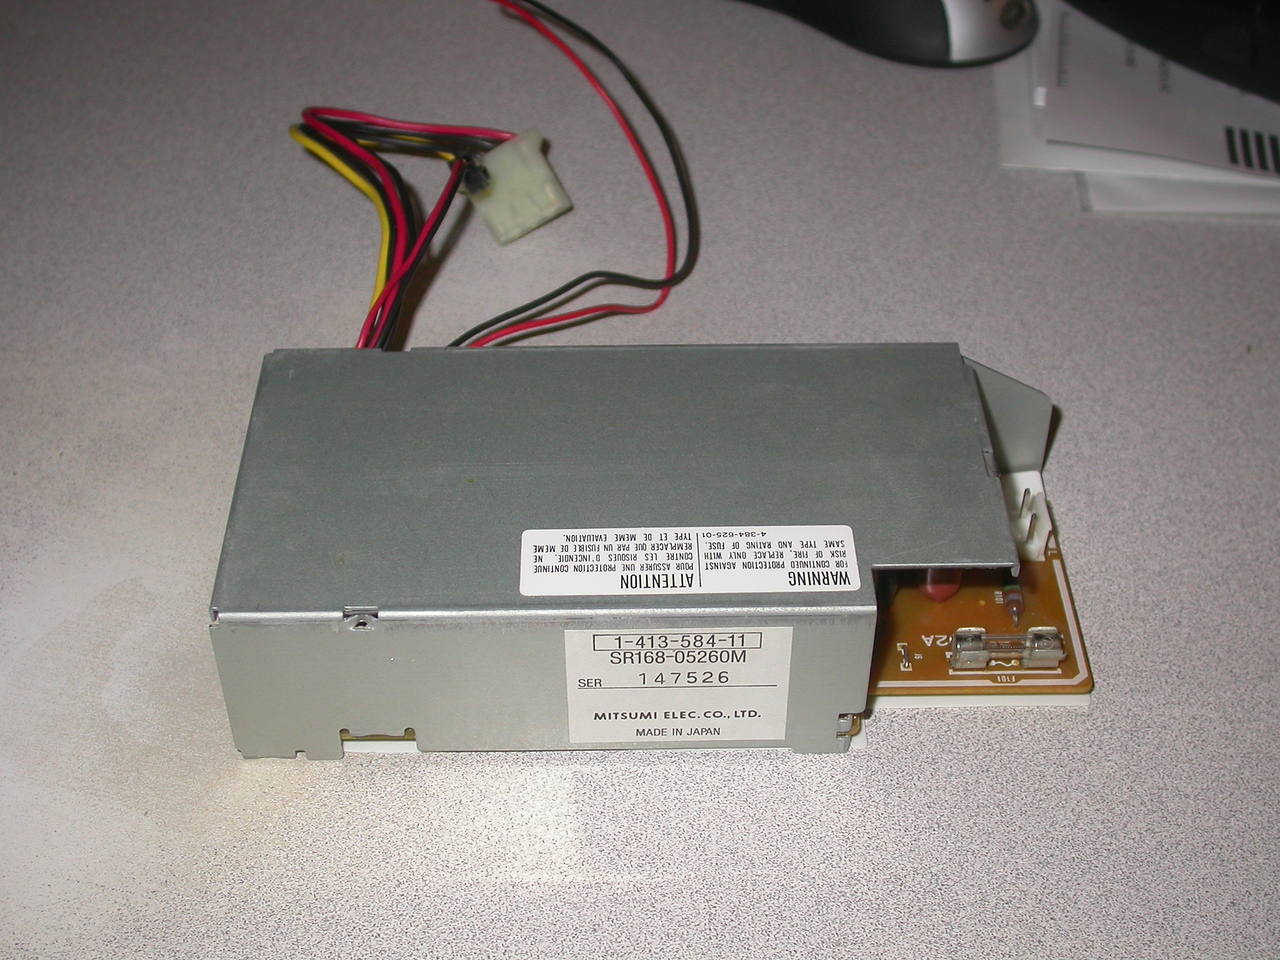 Power supply in it's case.  I've searched on the part numbers but haven't confirmed any specs for it.